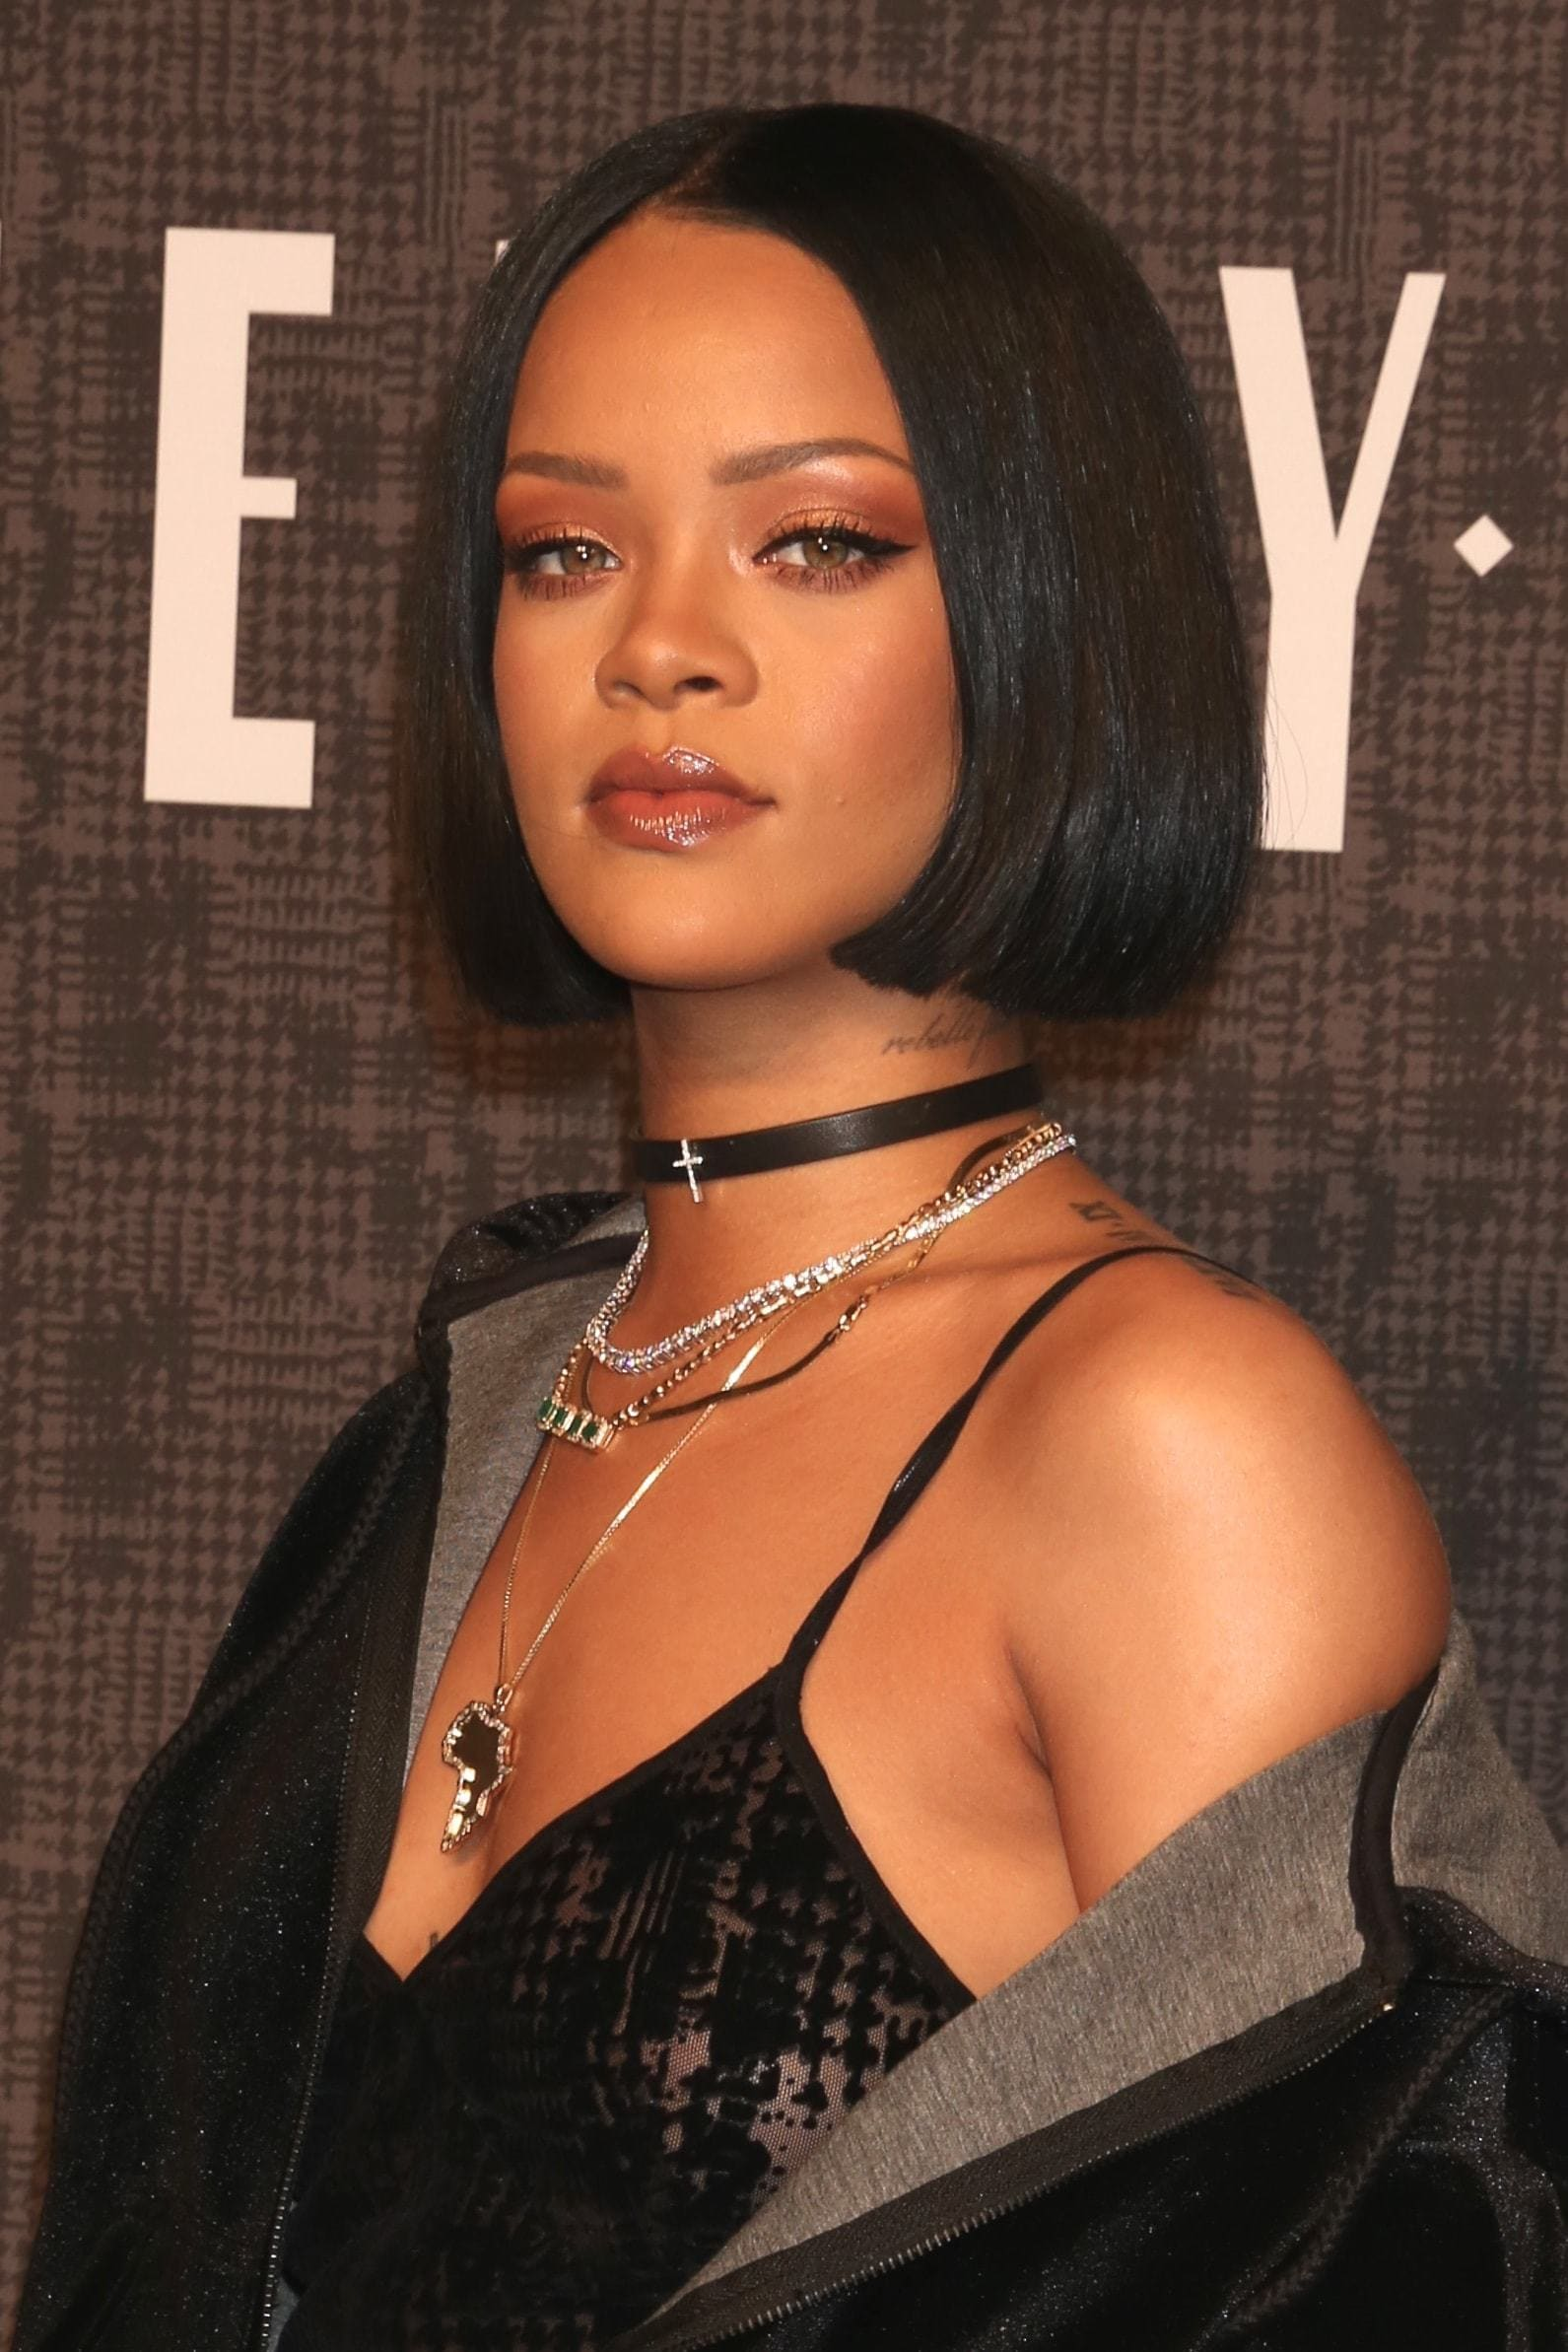 Rihanna with short blunt bob wearing all black at pumpa fenty launch